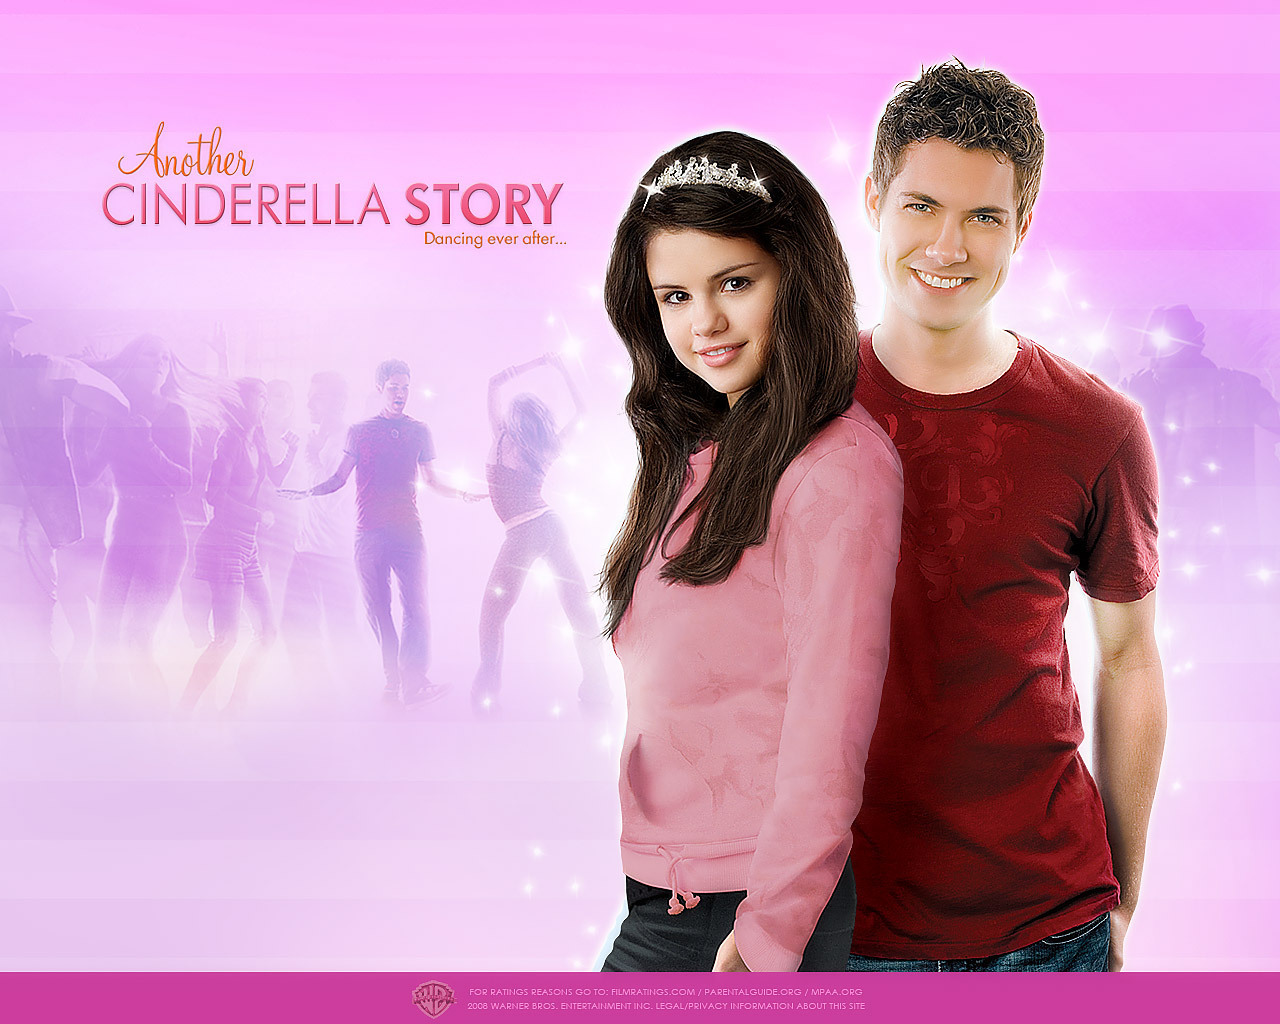 selena gomez and drew seeley images selena hd fond d�233cran